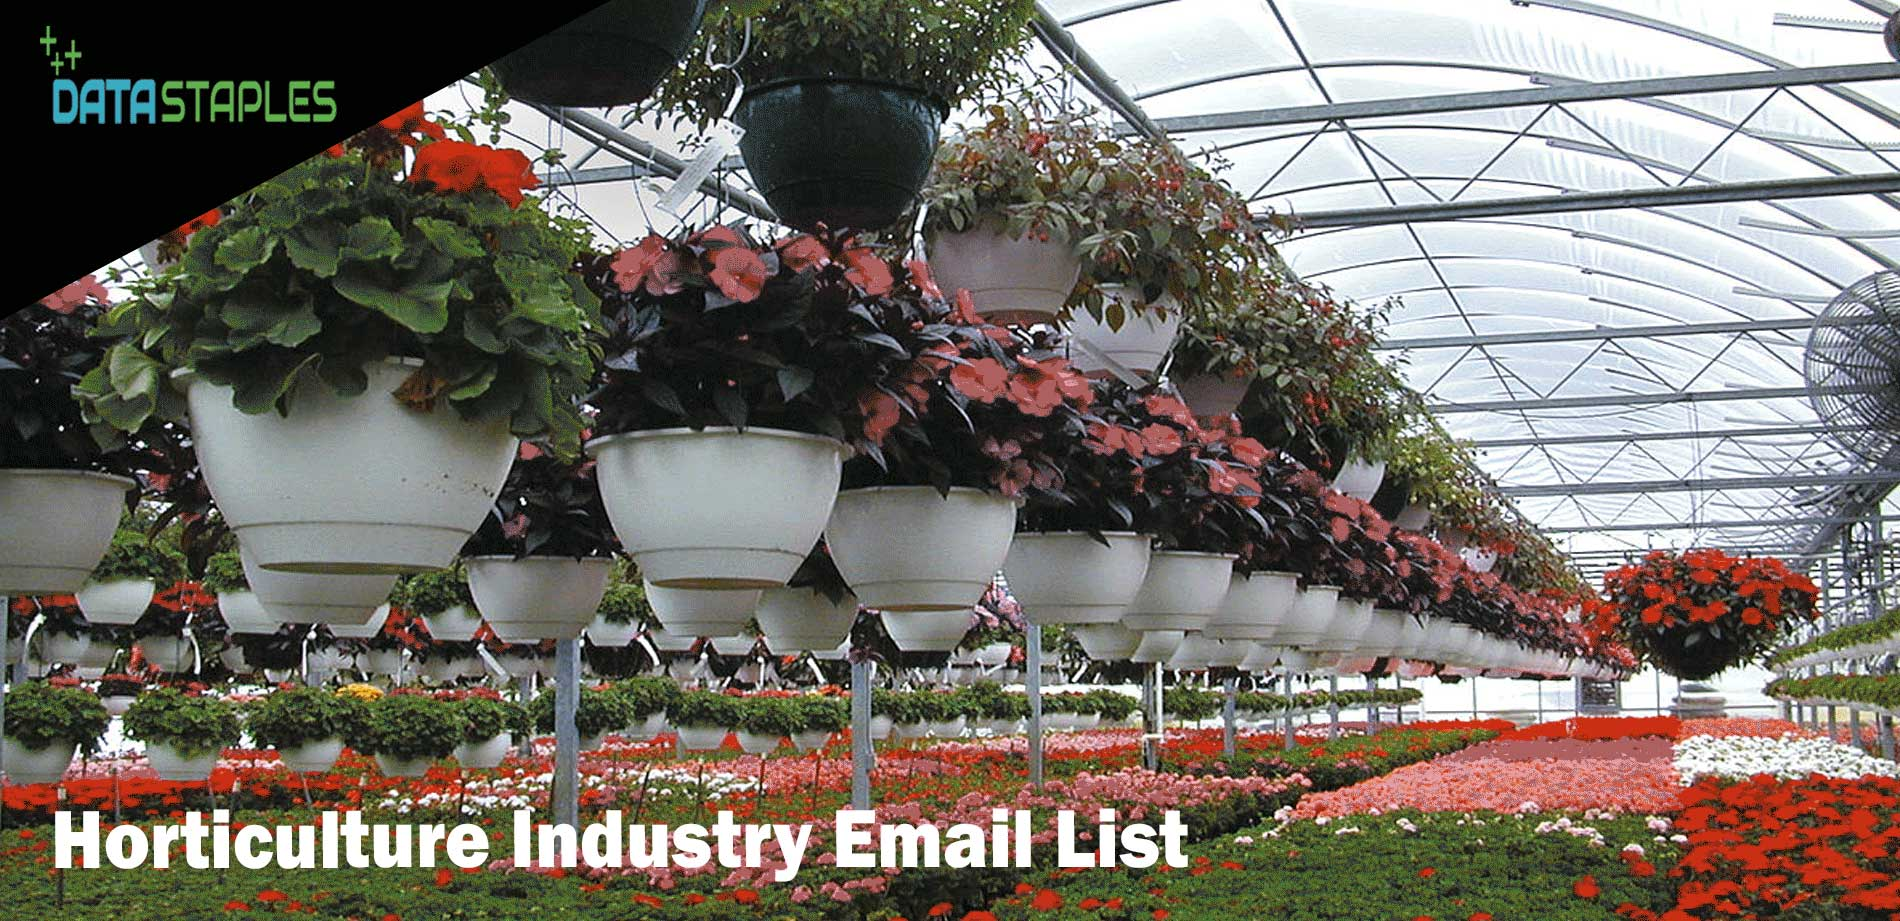 Horticulture Industry Email List   DataStaples